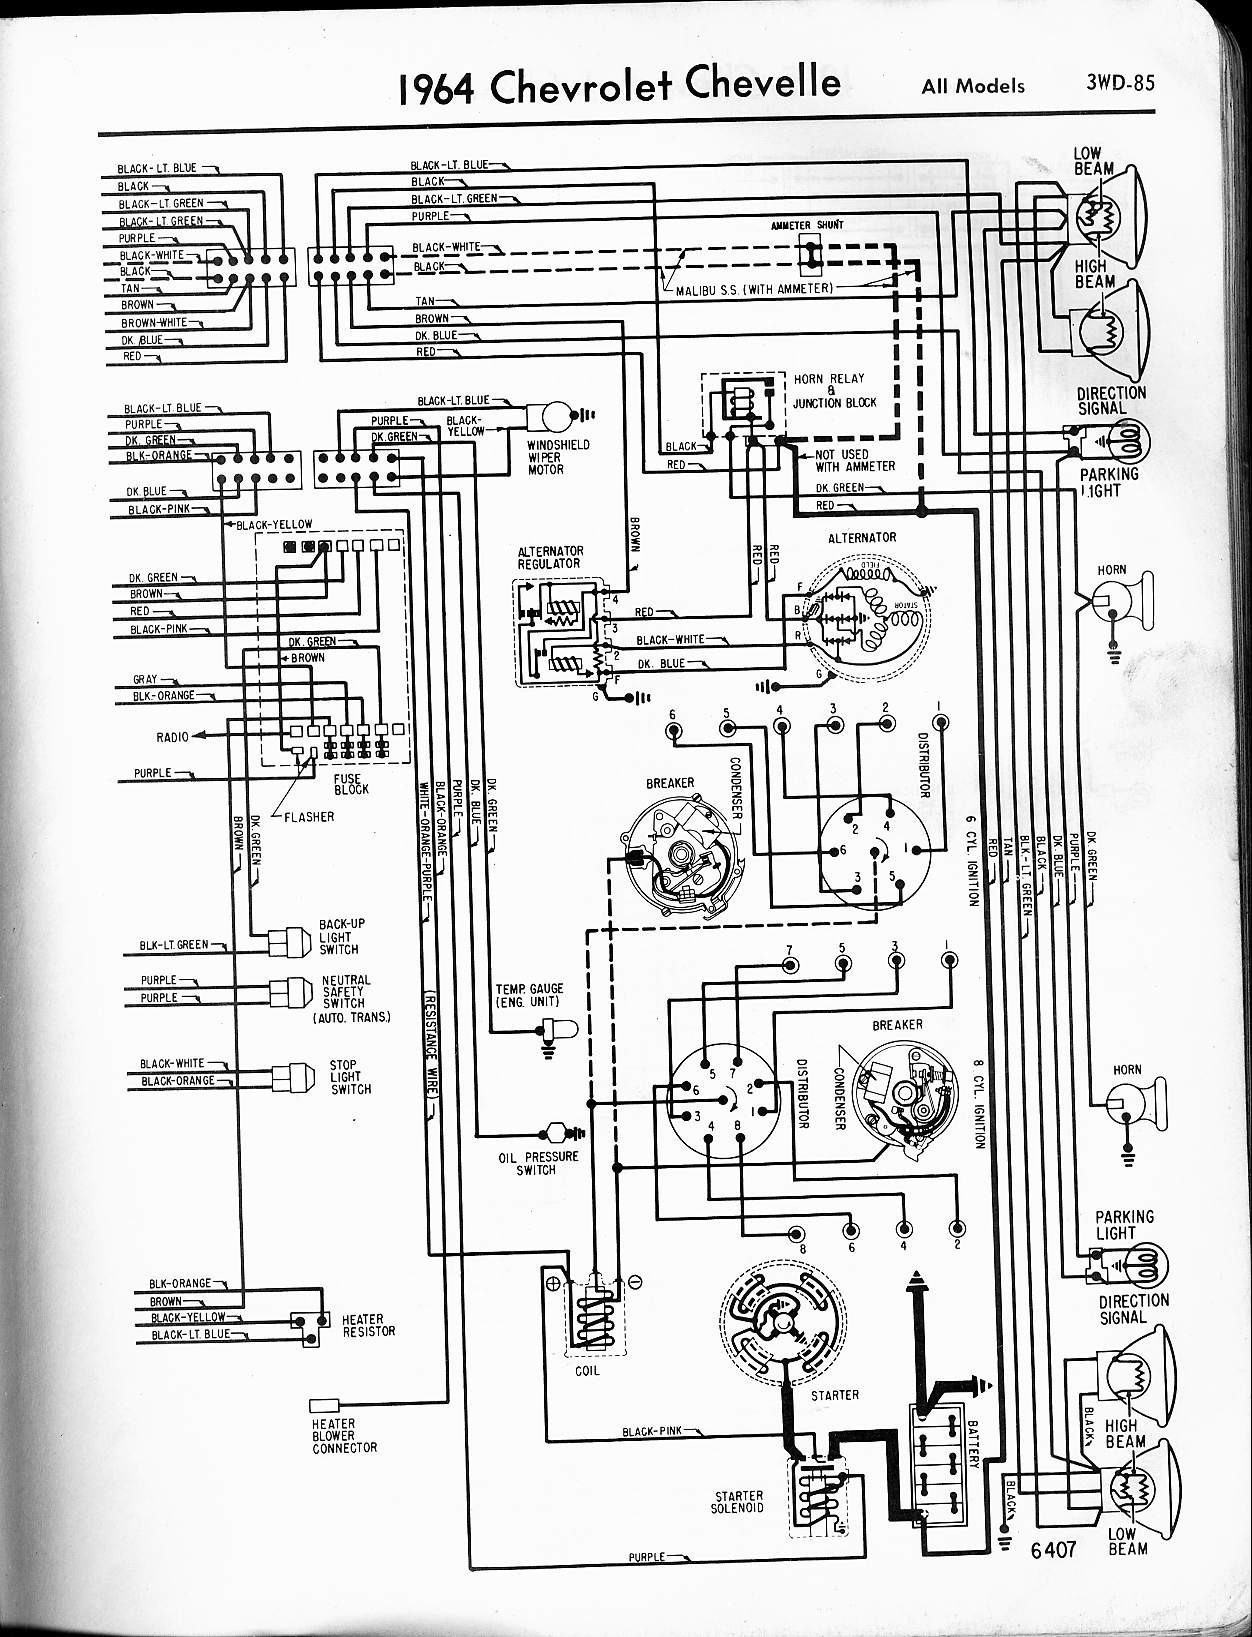 hight resolution of 1969 chevelle wiring diagram 57 65 chevy wiring diagrams u2013 my wiring1969 chevelle wiring diagram